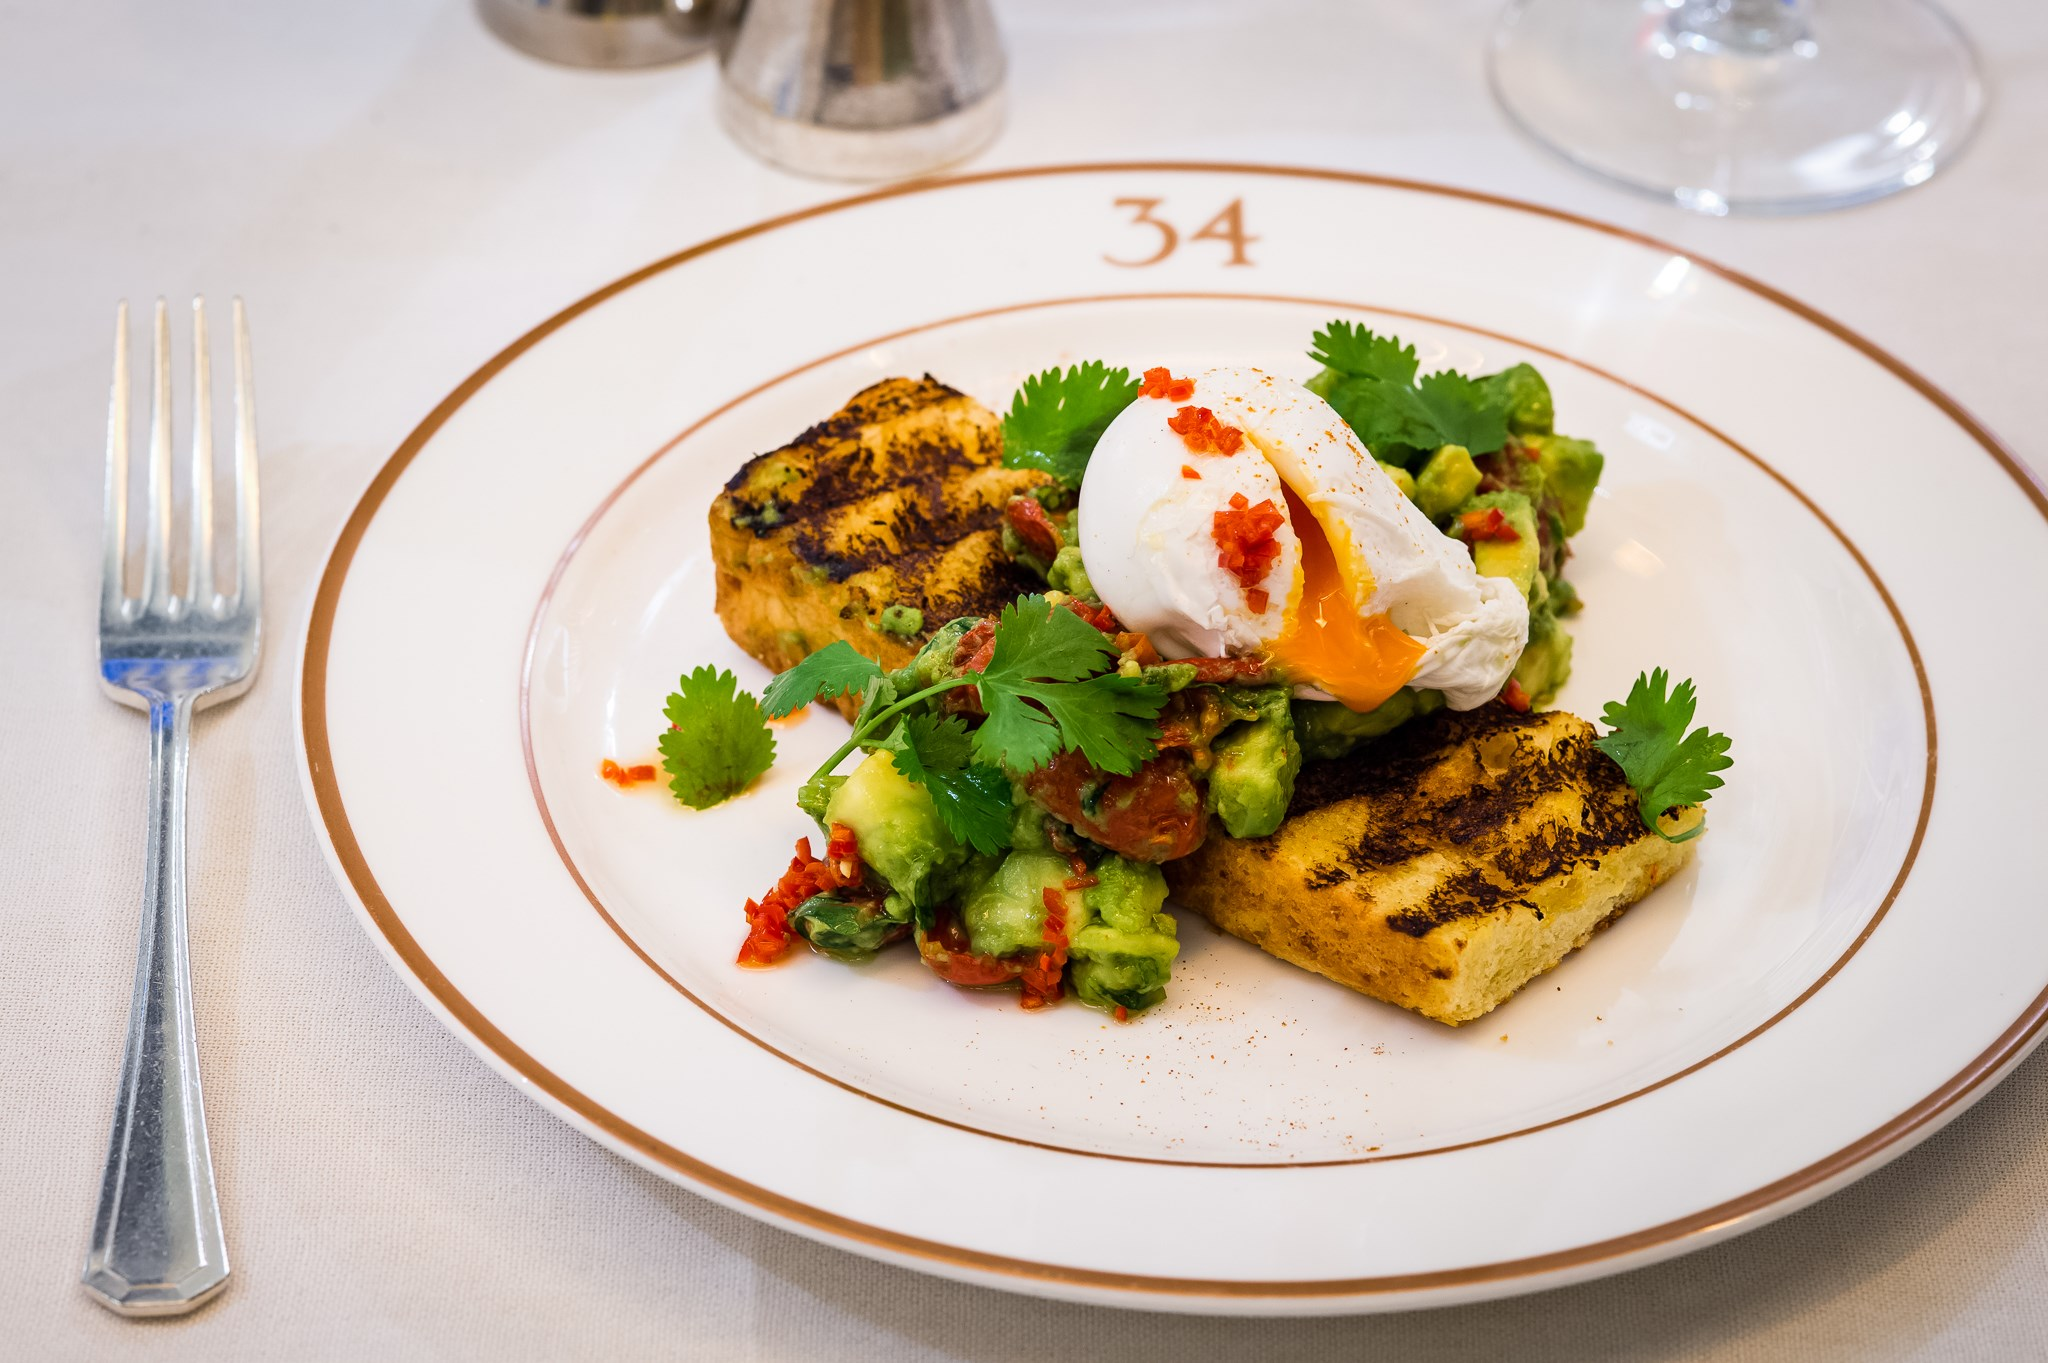 food at 34 mayfair by paul winch furness lr 6